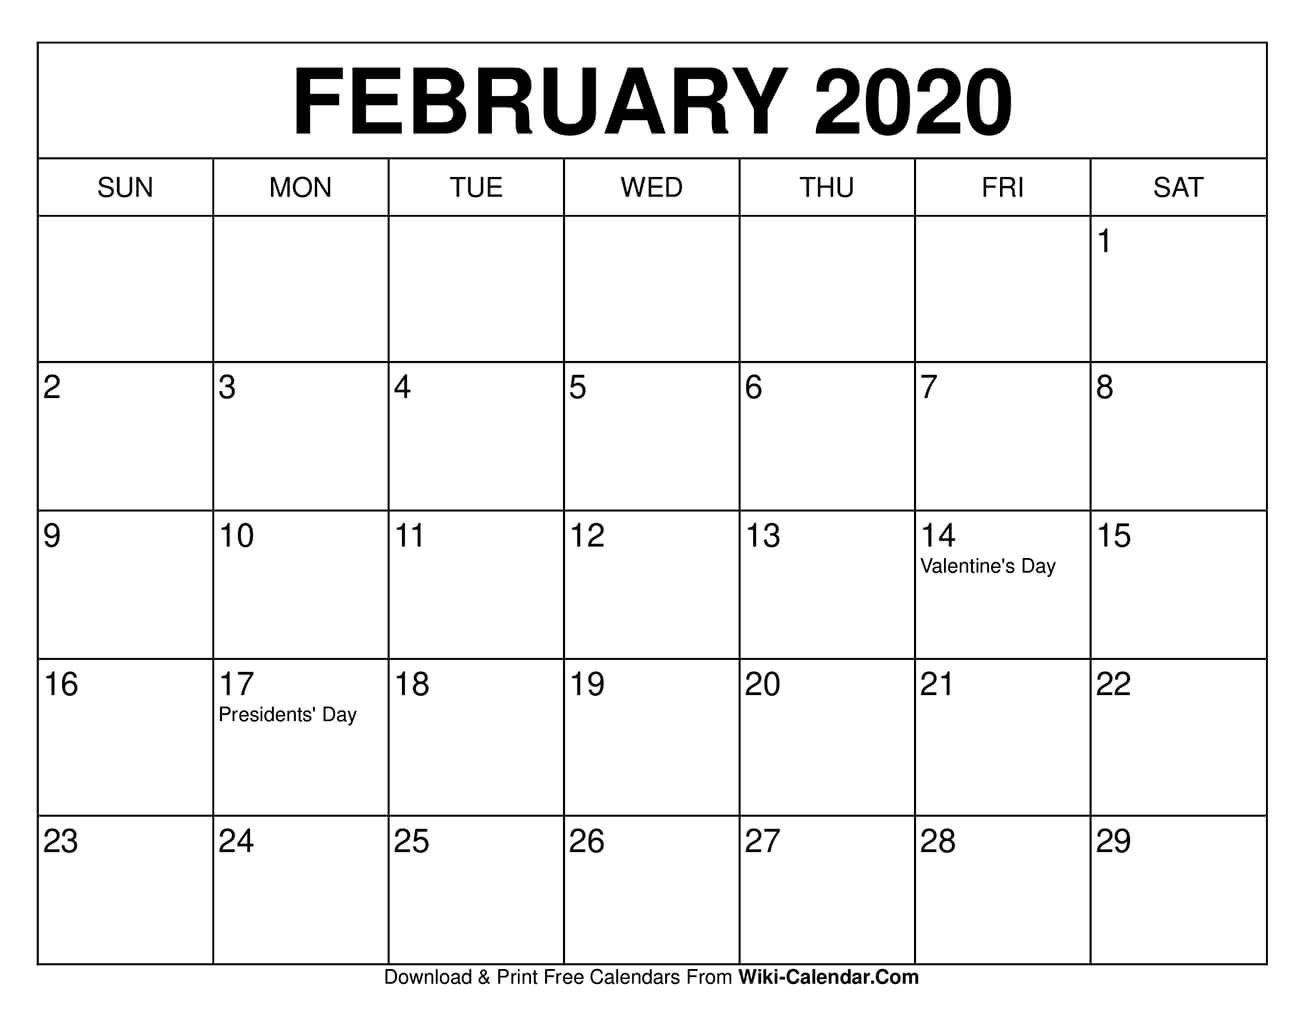 Free Printable February 2020 Calendars Calendar I Can Download And Edit